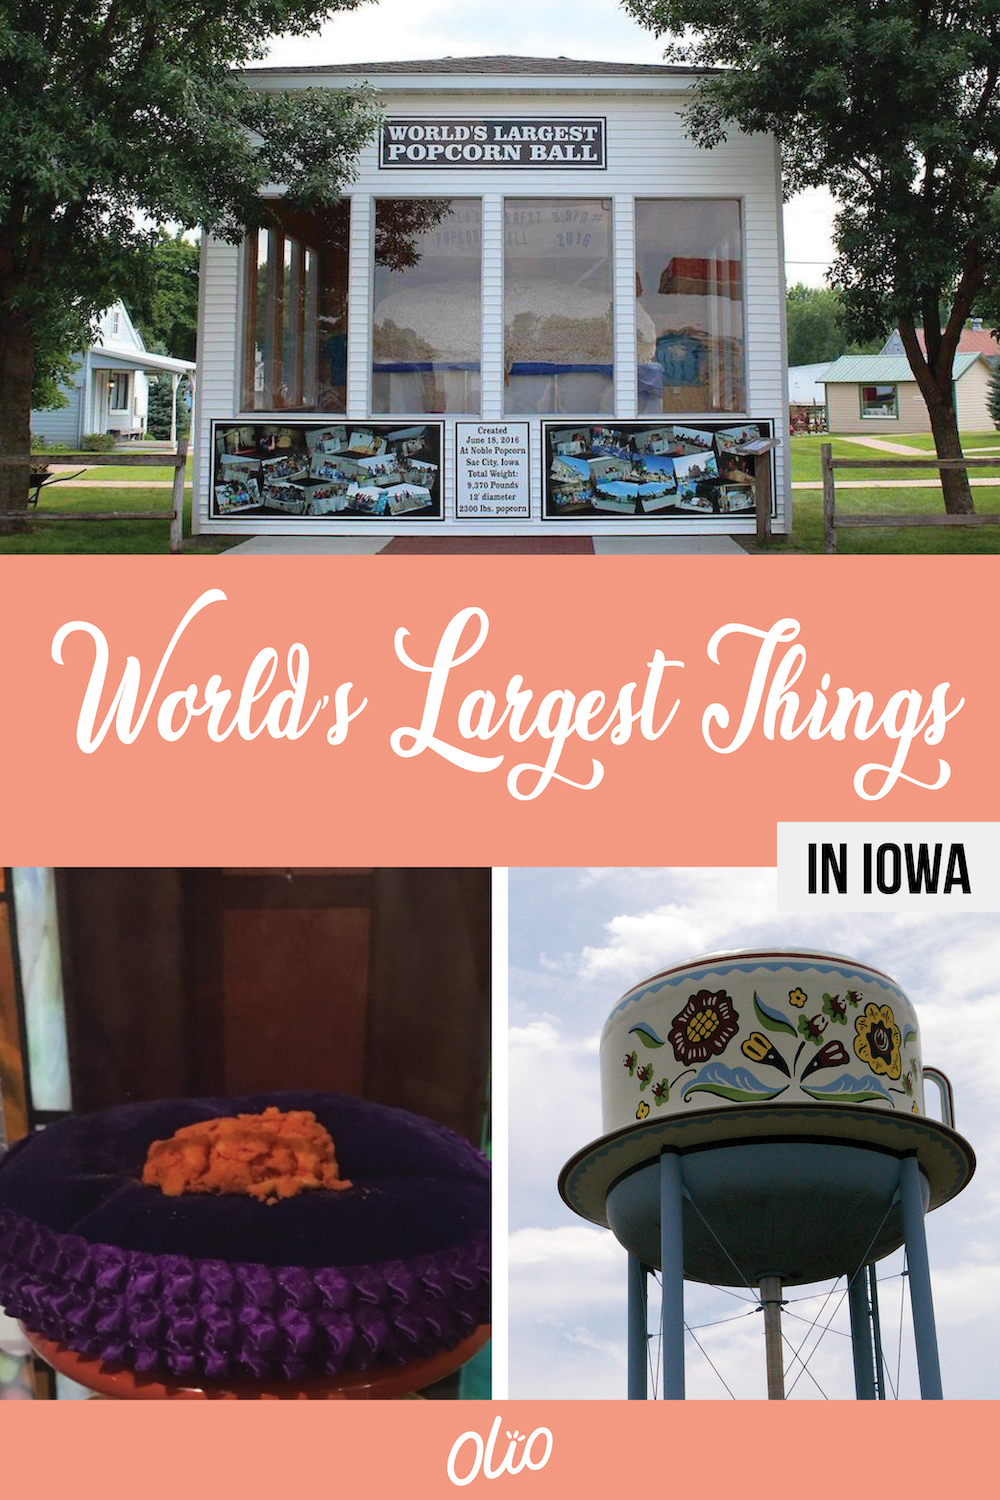 There are some many world's largest things in Iowa! From gigantic statues to odd-shaped foods, Iowa is full of road trip worthy offbeat attractions, including the World's Largest Strawberry, World's Largest Ball of Popcorn and more. #Iowa #RoadsideAttractions